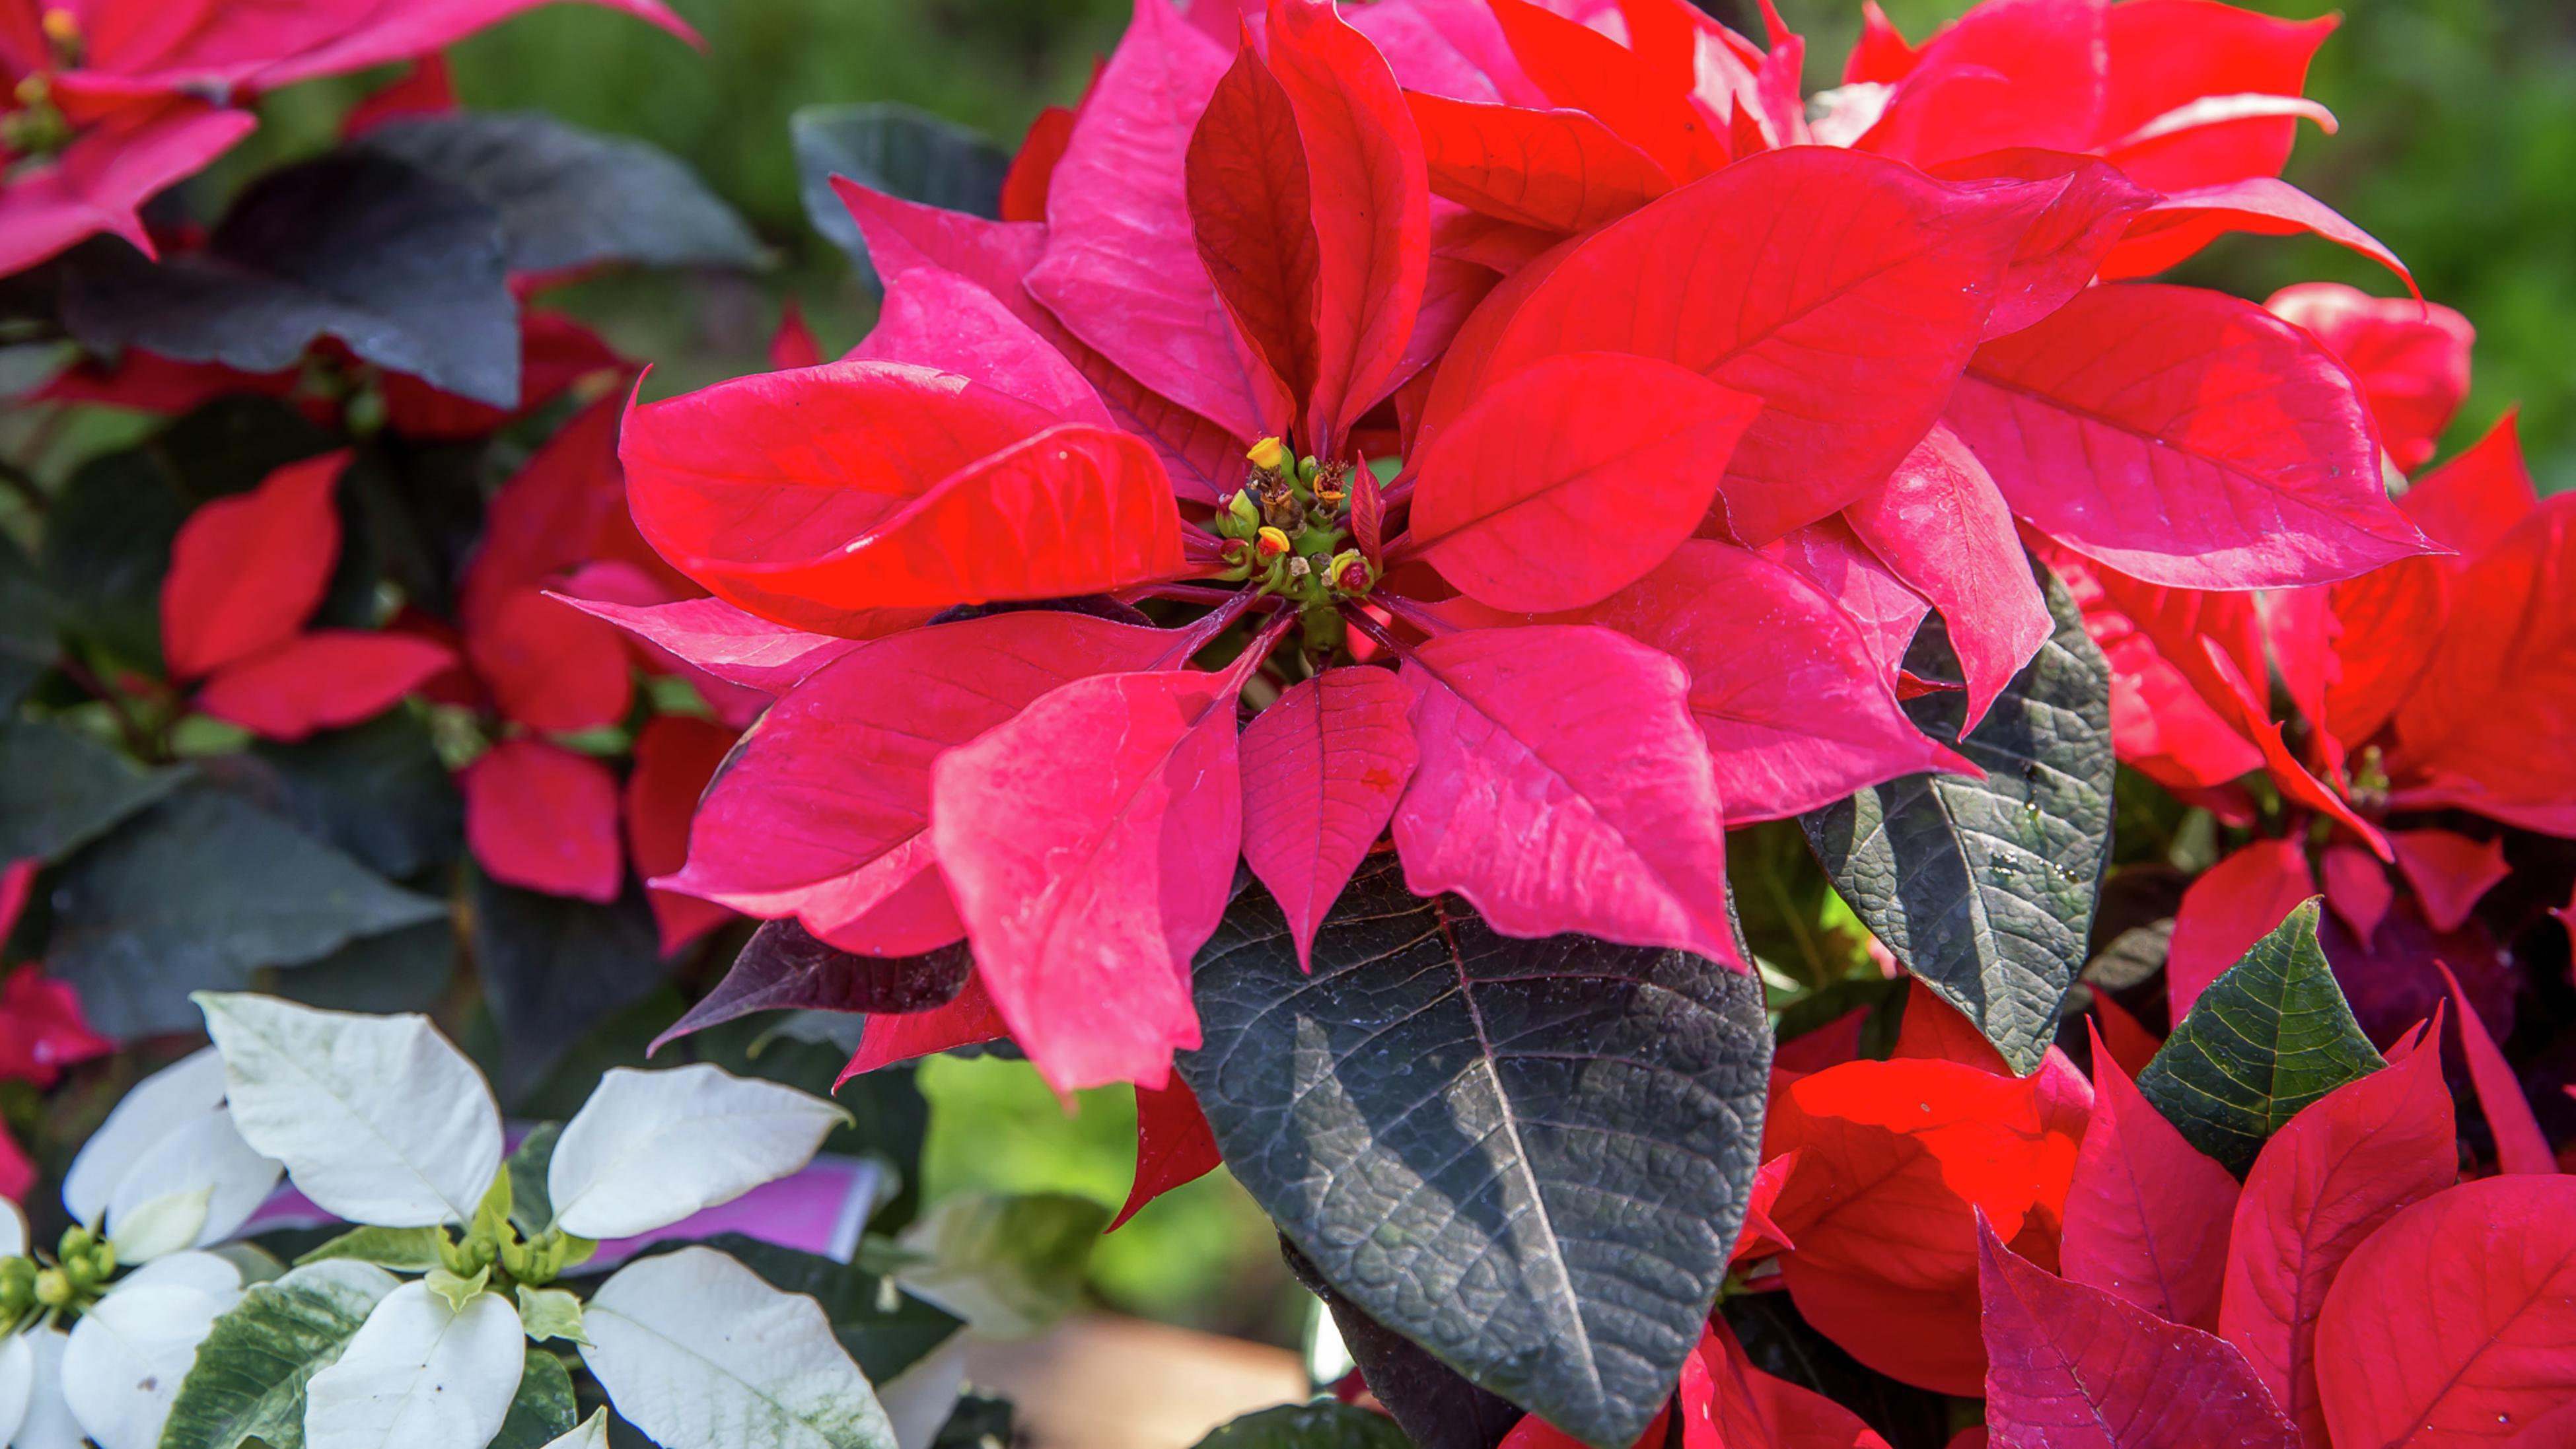 A close up of a red poinsettia flower with green leaves.